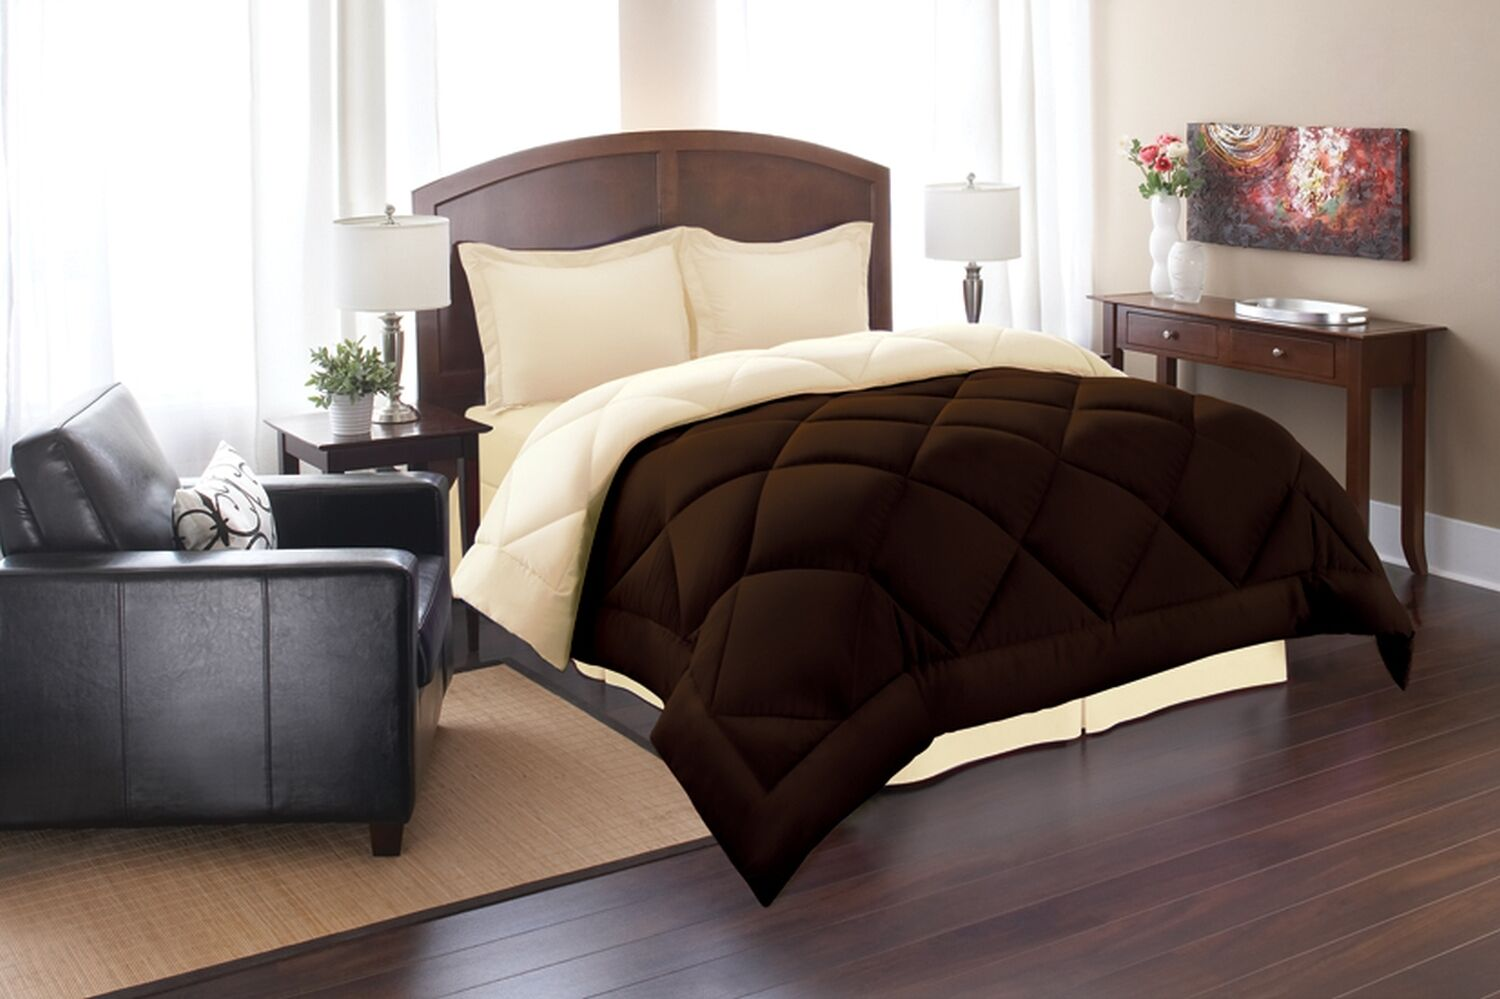 goose down alternative double filled luxury comforter king queen full size. Black Bedroom Furniture Sets. Home Design Ideas